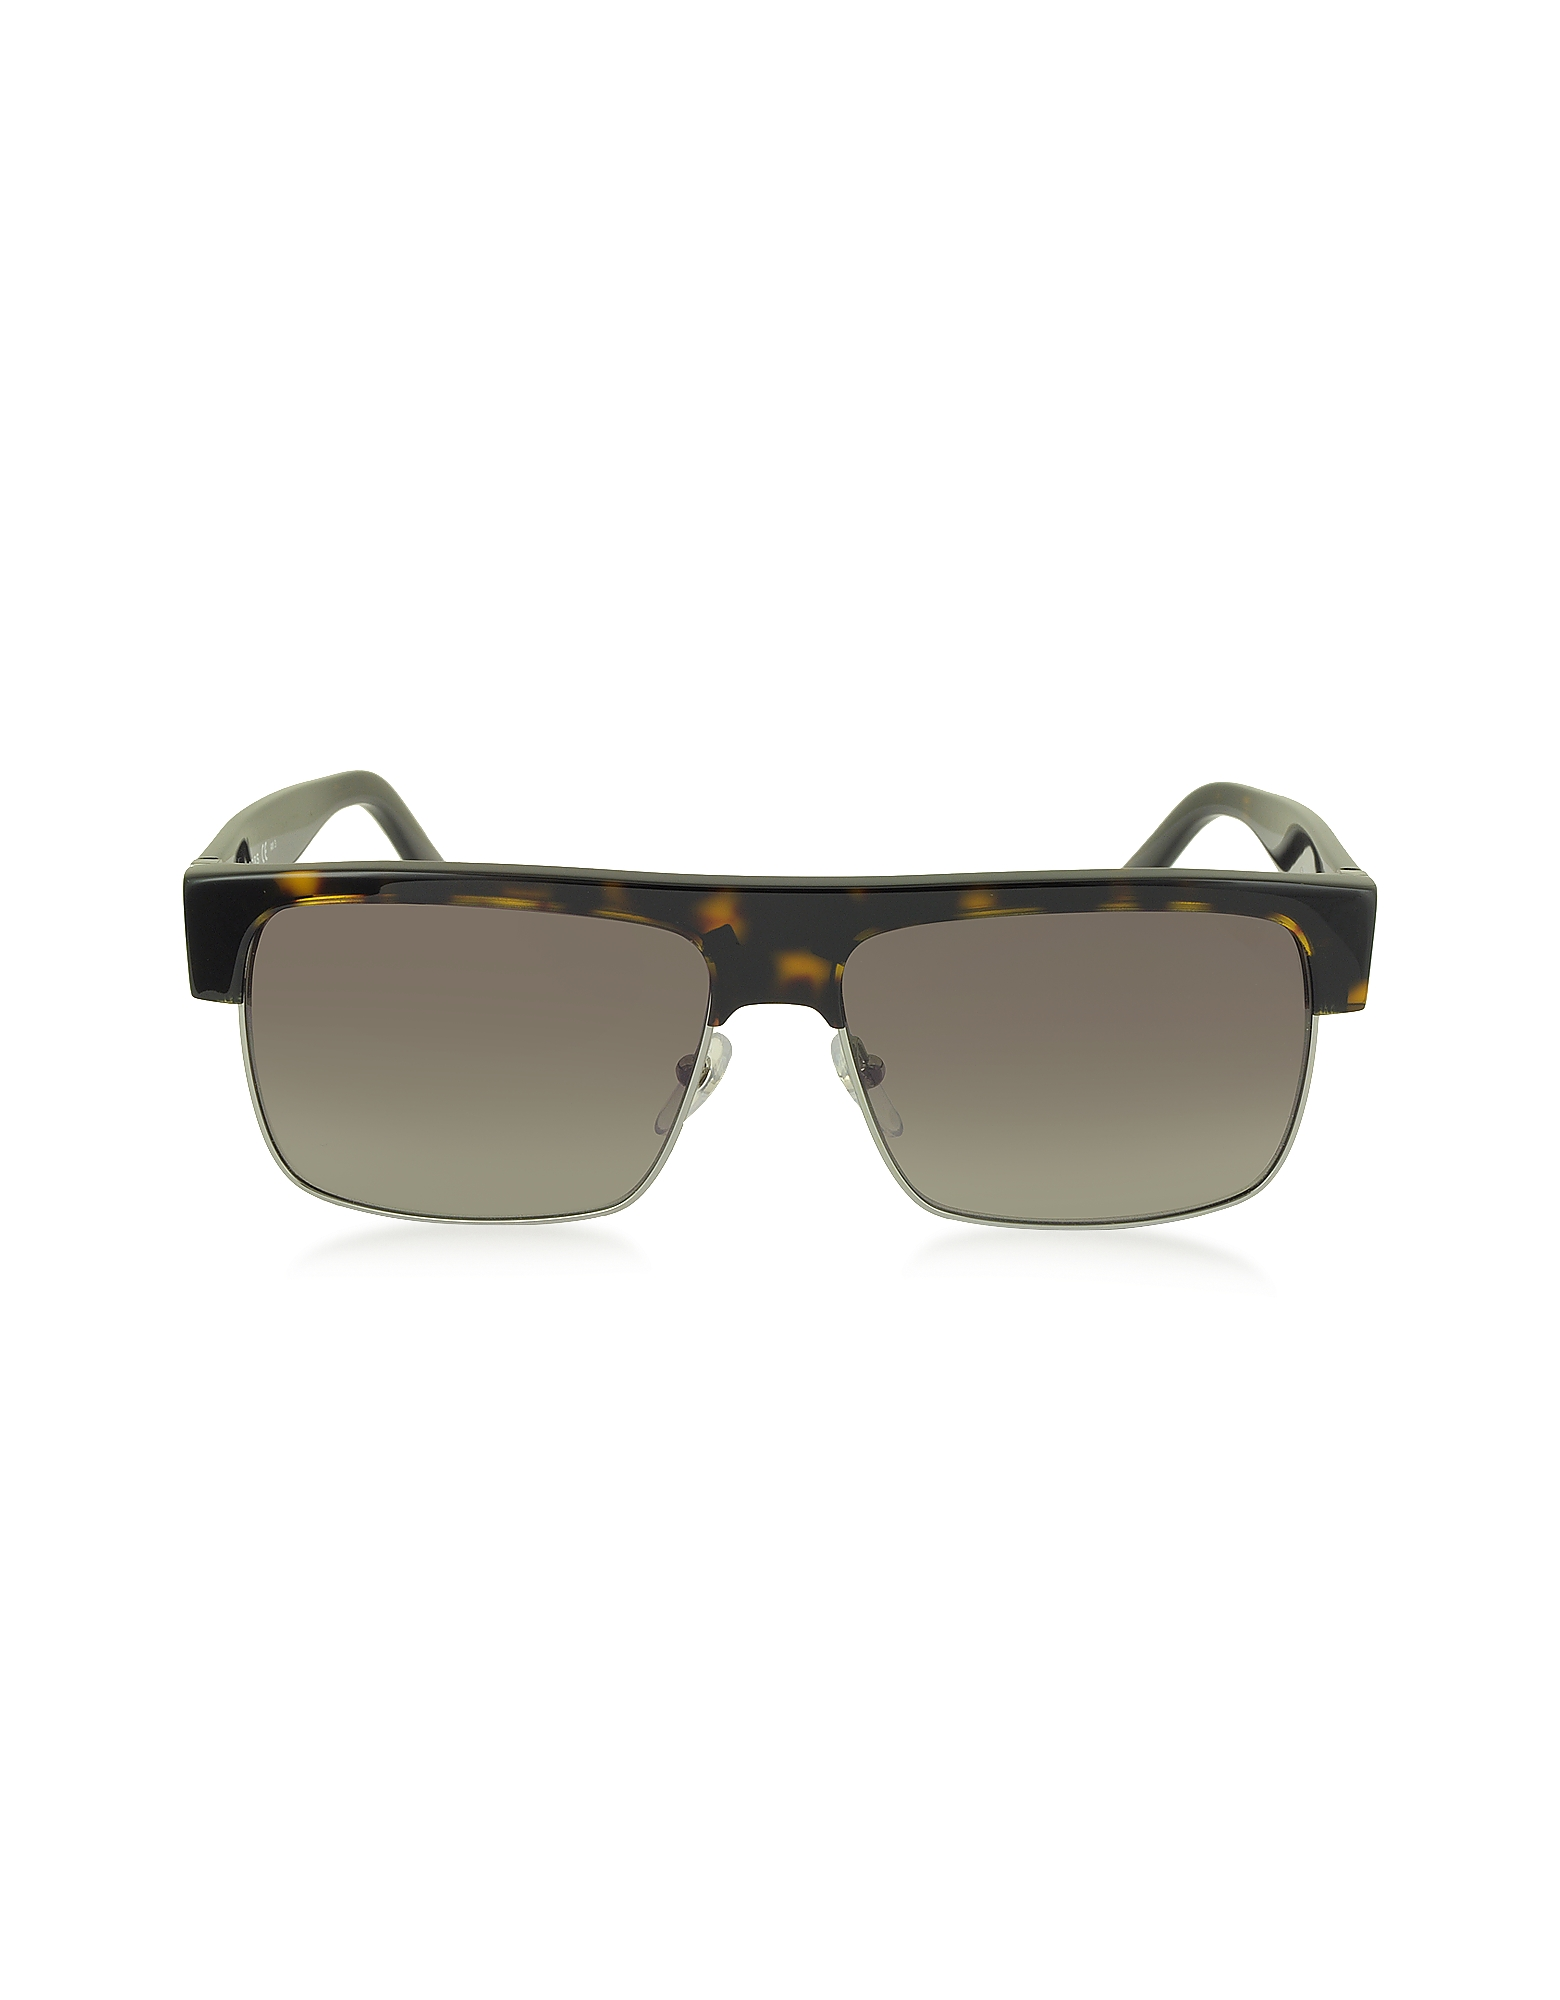 Marc Jacobs Sunglasses, MARC 56/S Acetate and Metal Men's Sunglasses